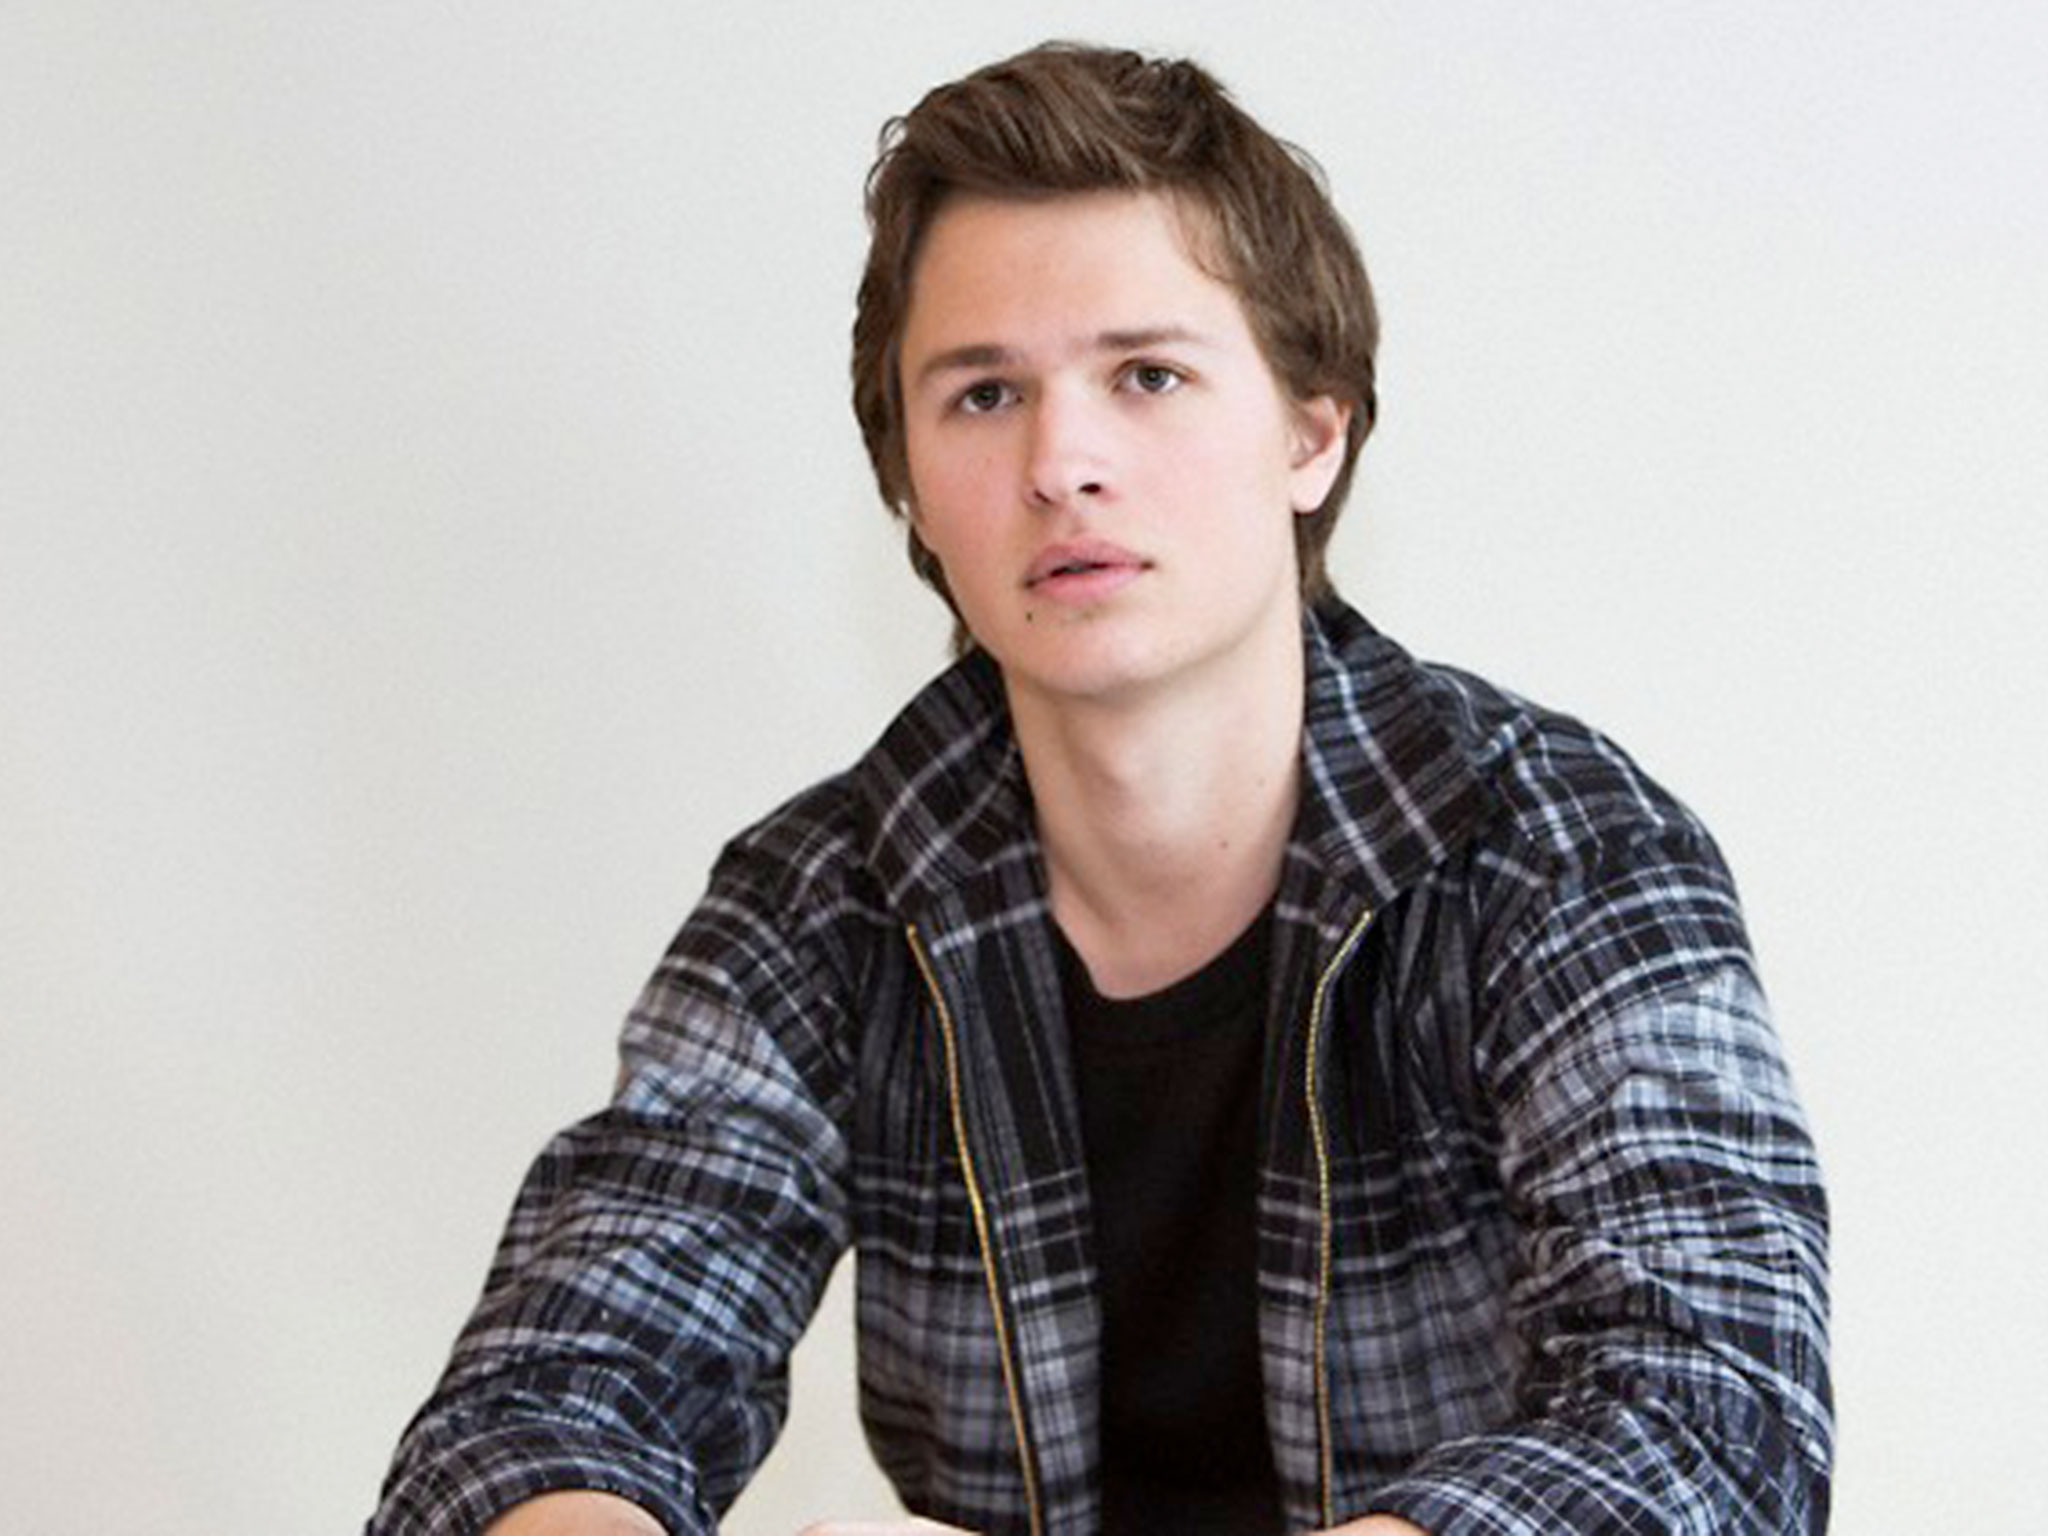 The Fault in Our Stars' Ansel Elgort to show off piano skills in new Cold War movie Van Cliburn - News - Films - The Independent